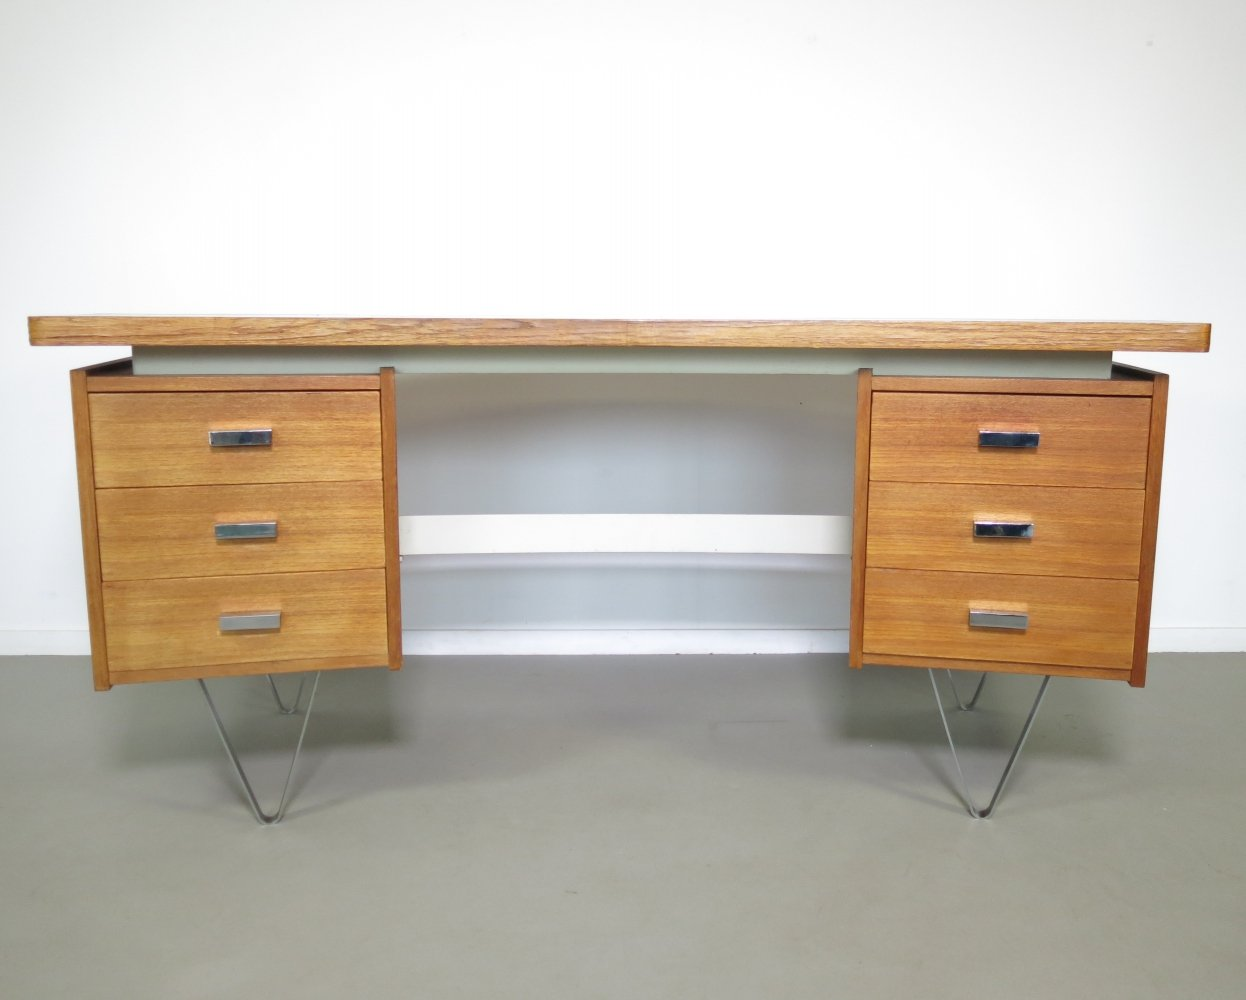 Boomerang writing desk by Tijsseling, 1960s